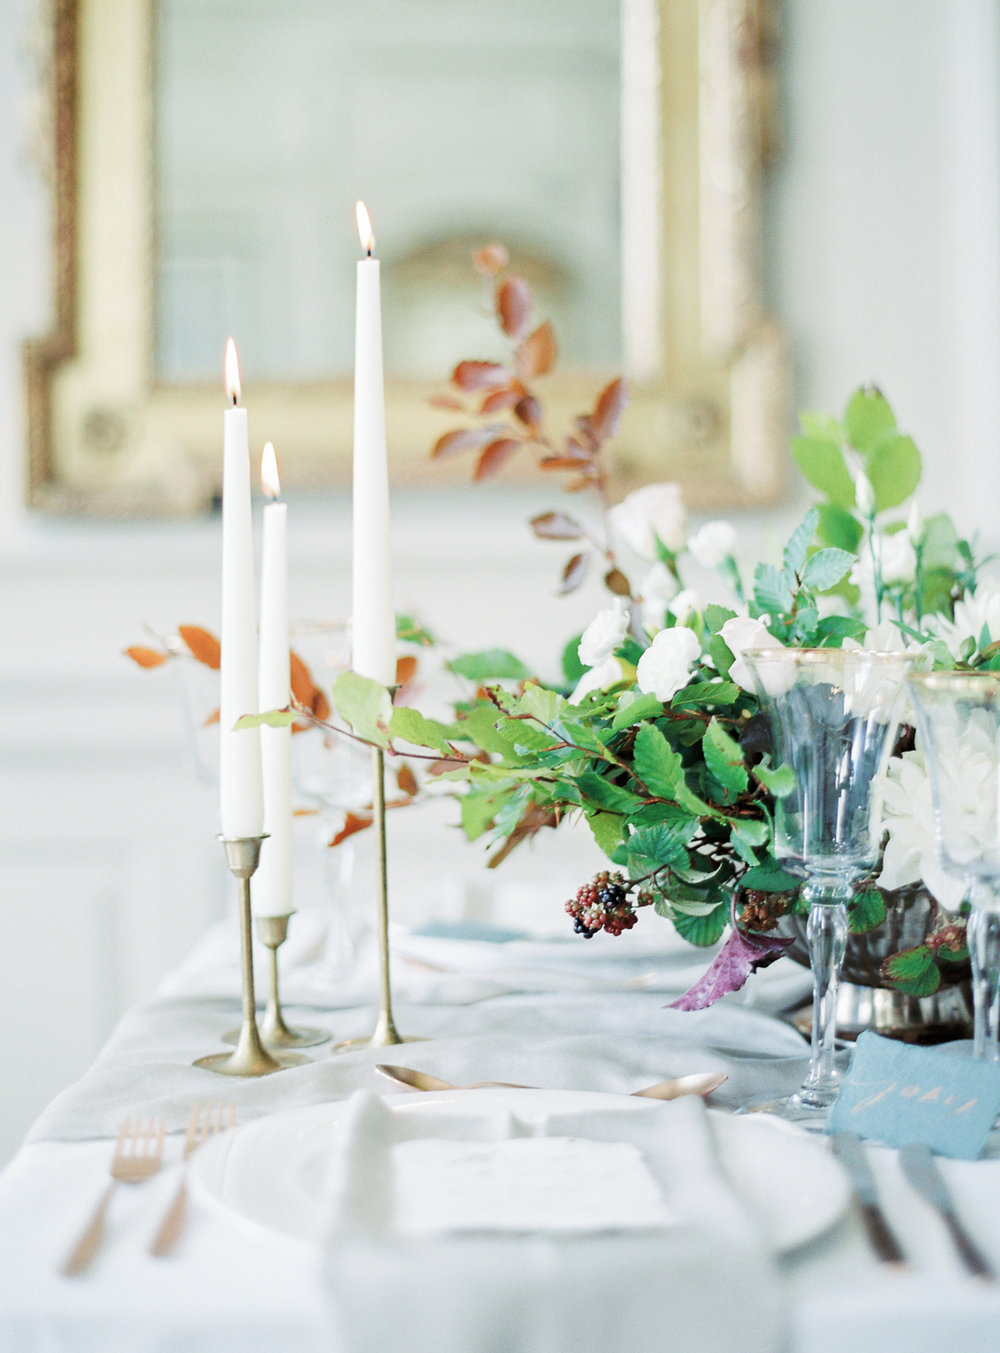 tablescape - *insert location/project